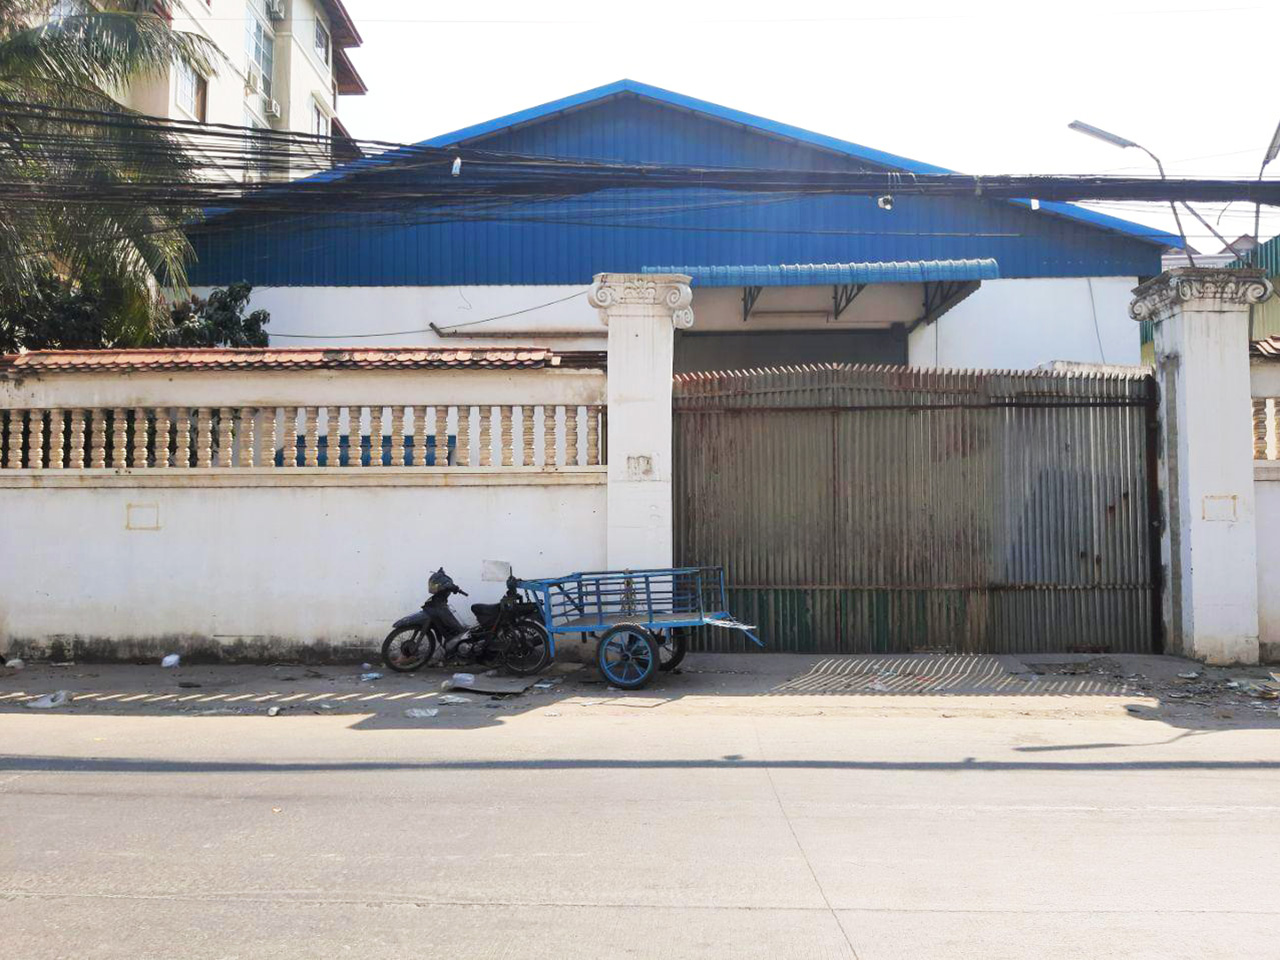 735 Sq.m warehouse for rent – Phsar Daeum Thkov area